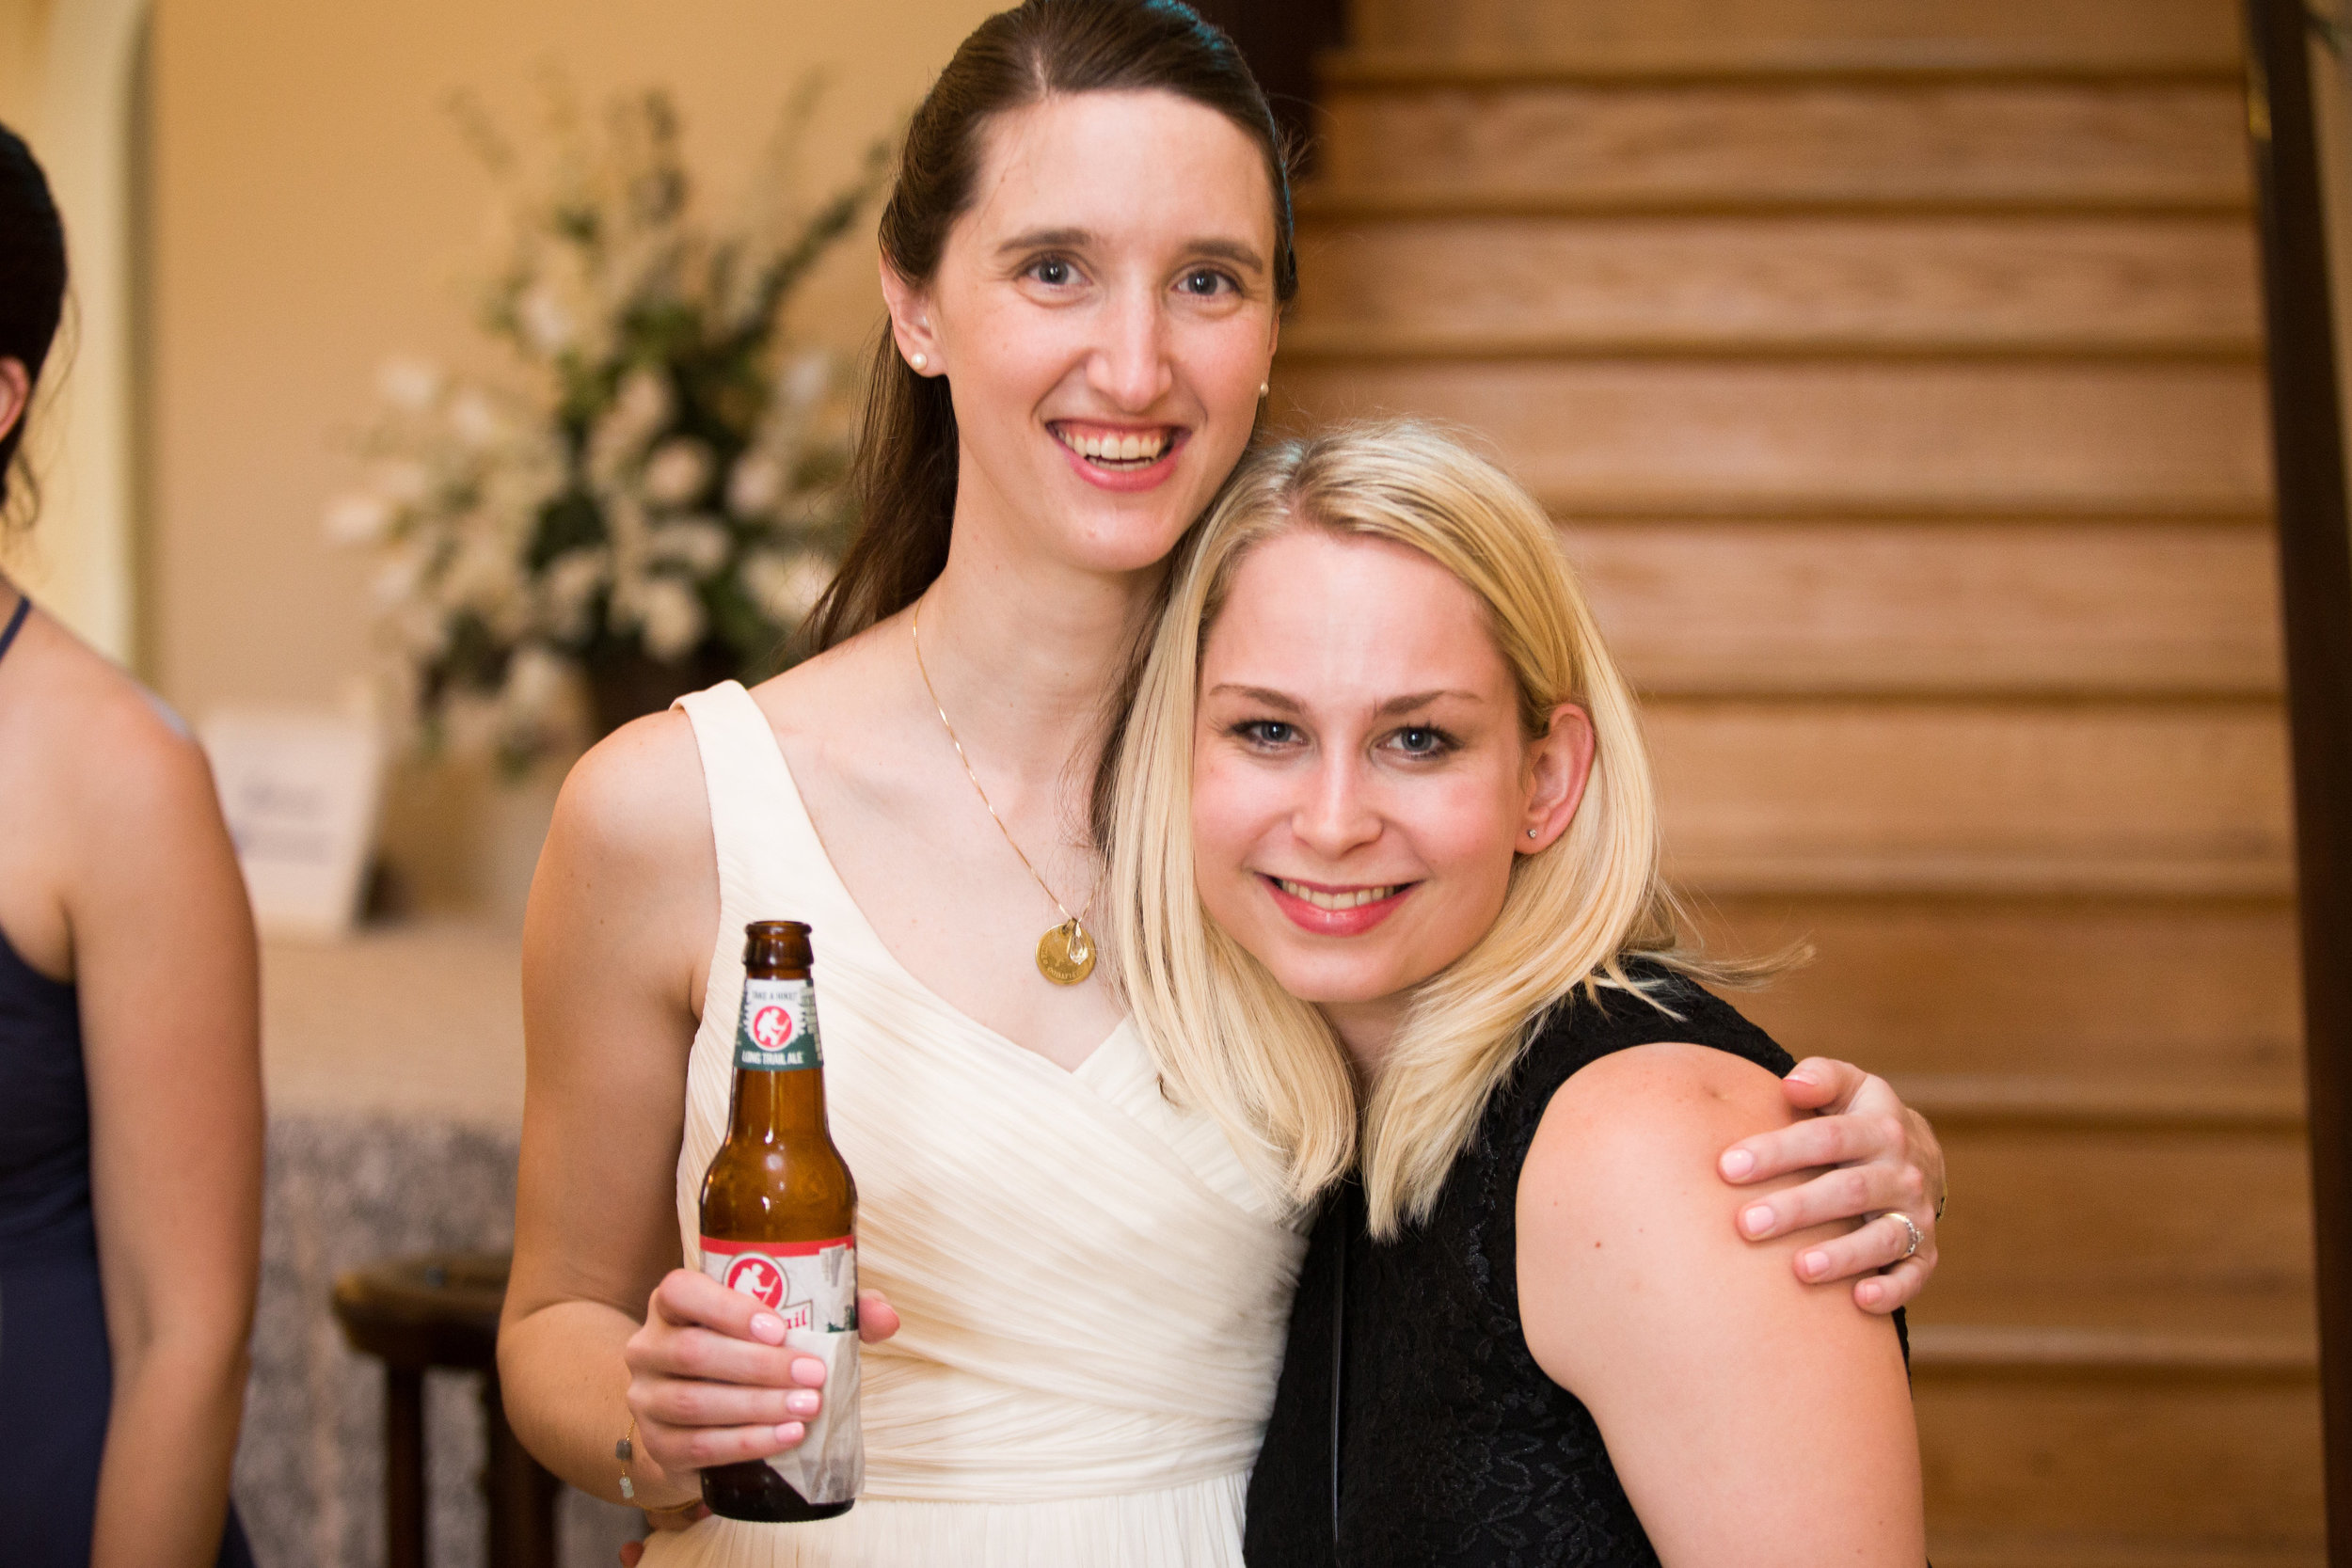 julie-dicarlo-photography-kentlands-mansion-wedding-brielle-davis-events-brielle-with-bride.jpg